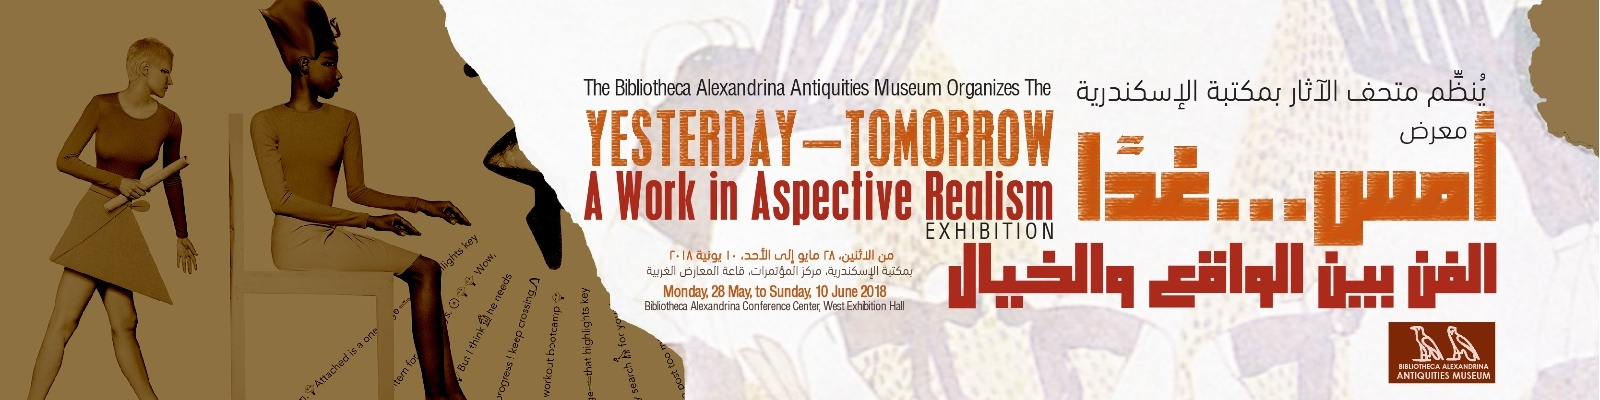 Yesterday ‒ Tomorrow: a Work in Aspective Realism